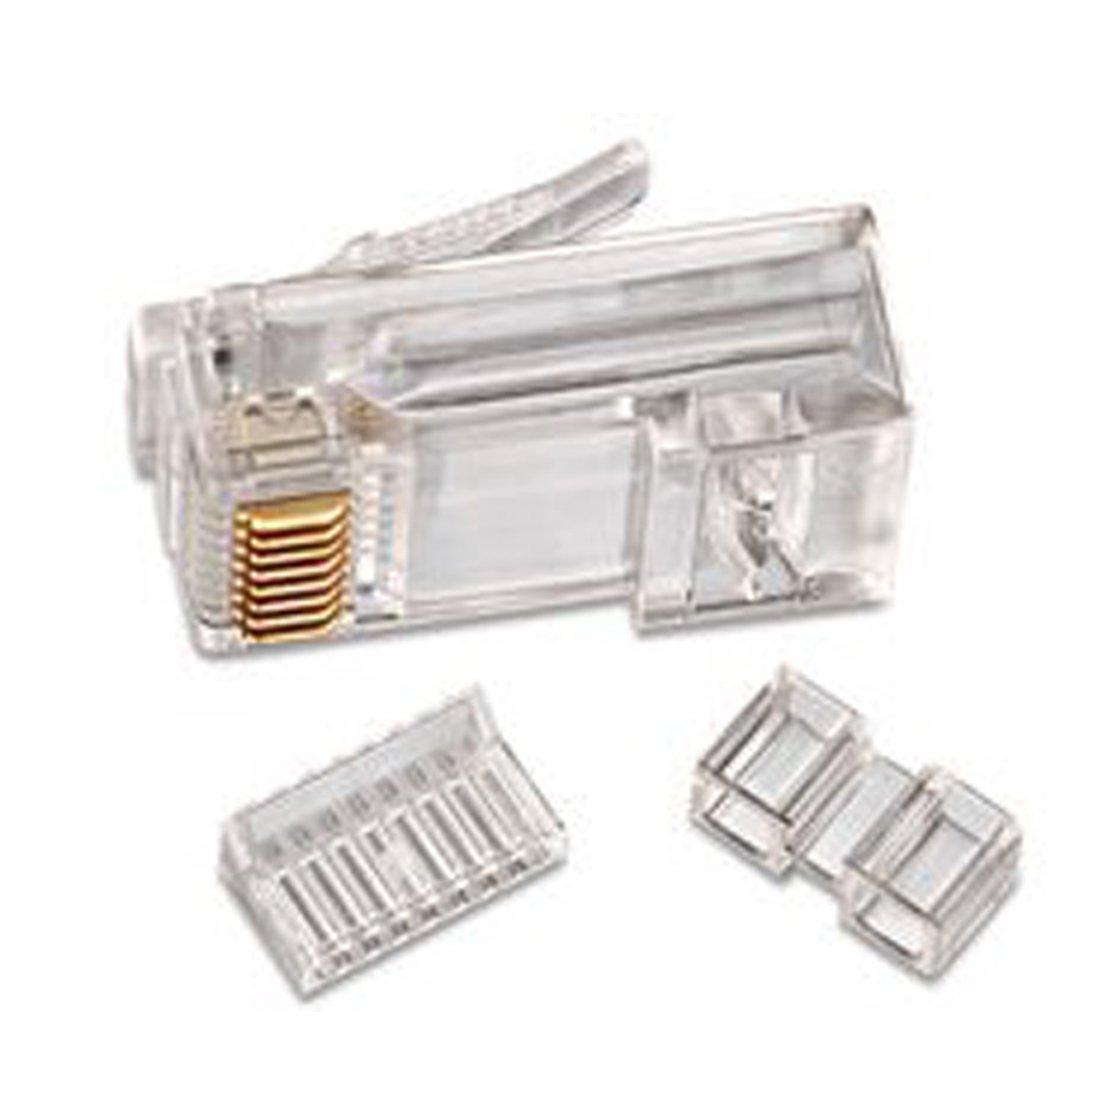 Outstanding Wiring Cat 6 Connectors Elaboration - Best Images for ...